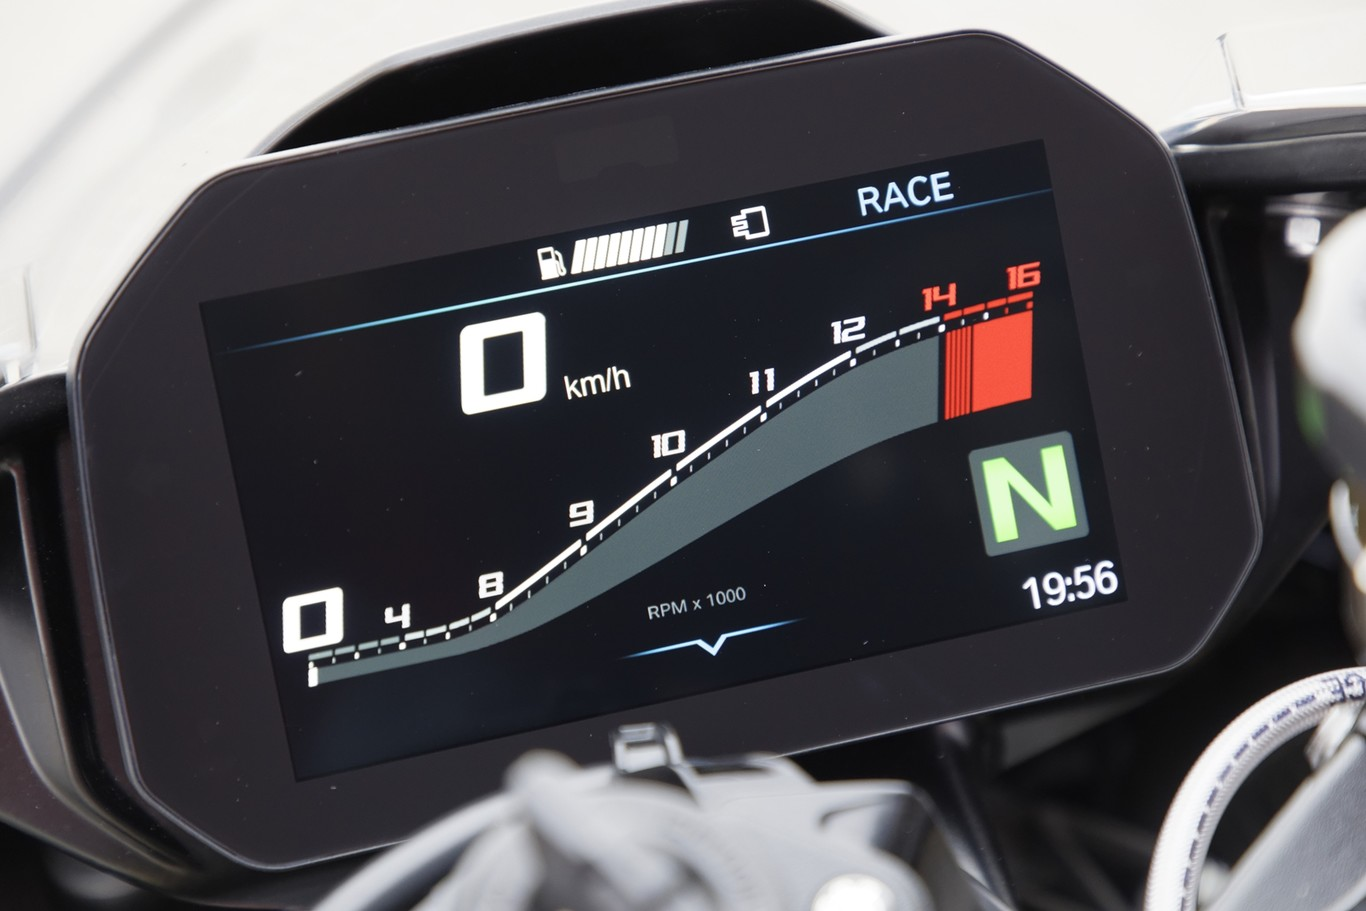 bmw s1000rr 2019 speedo